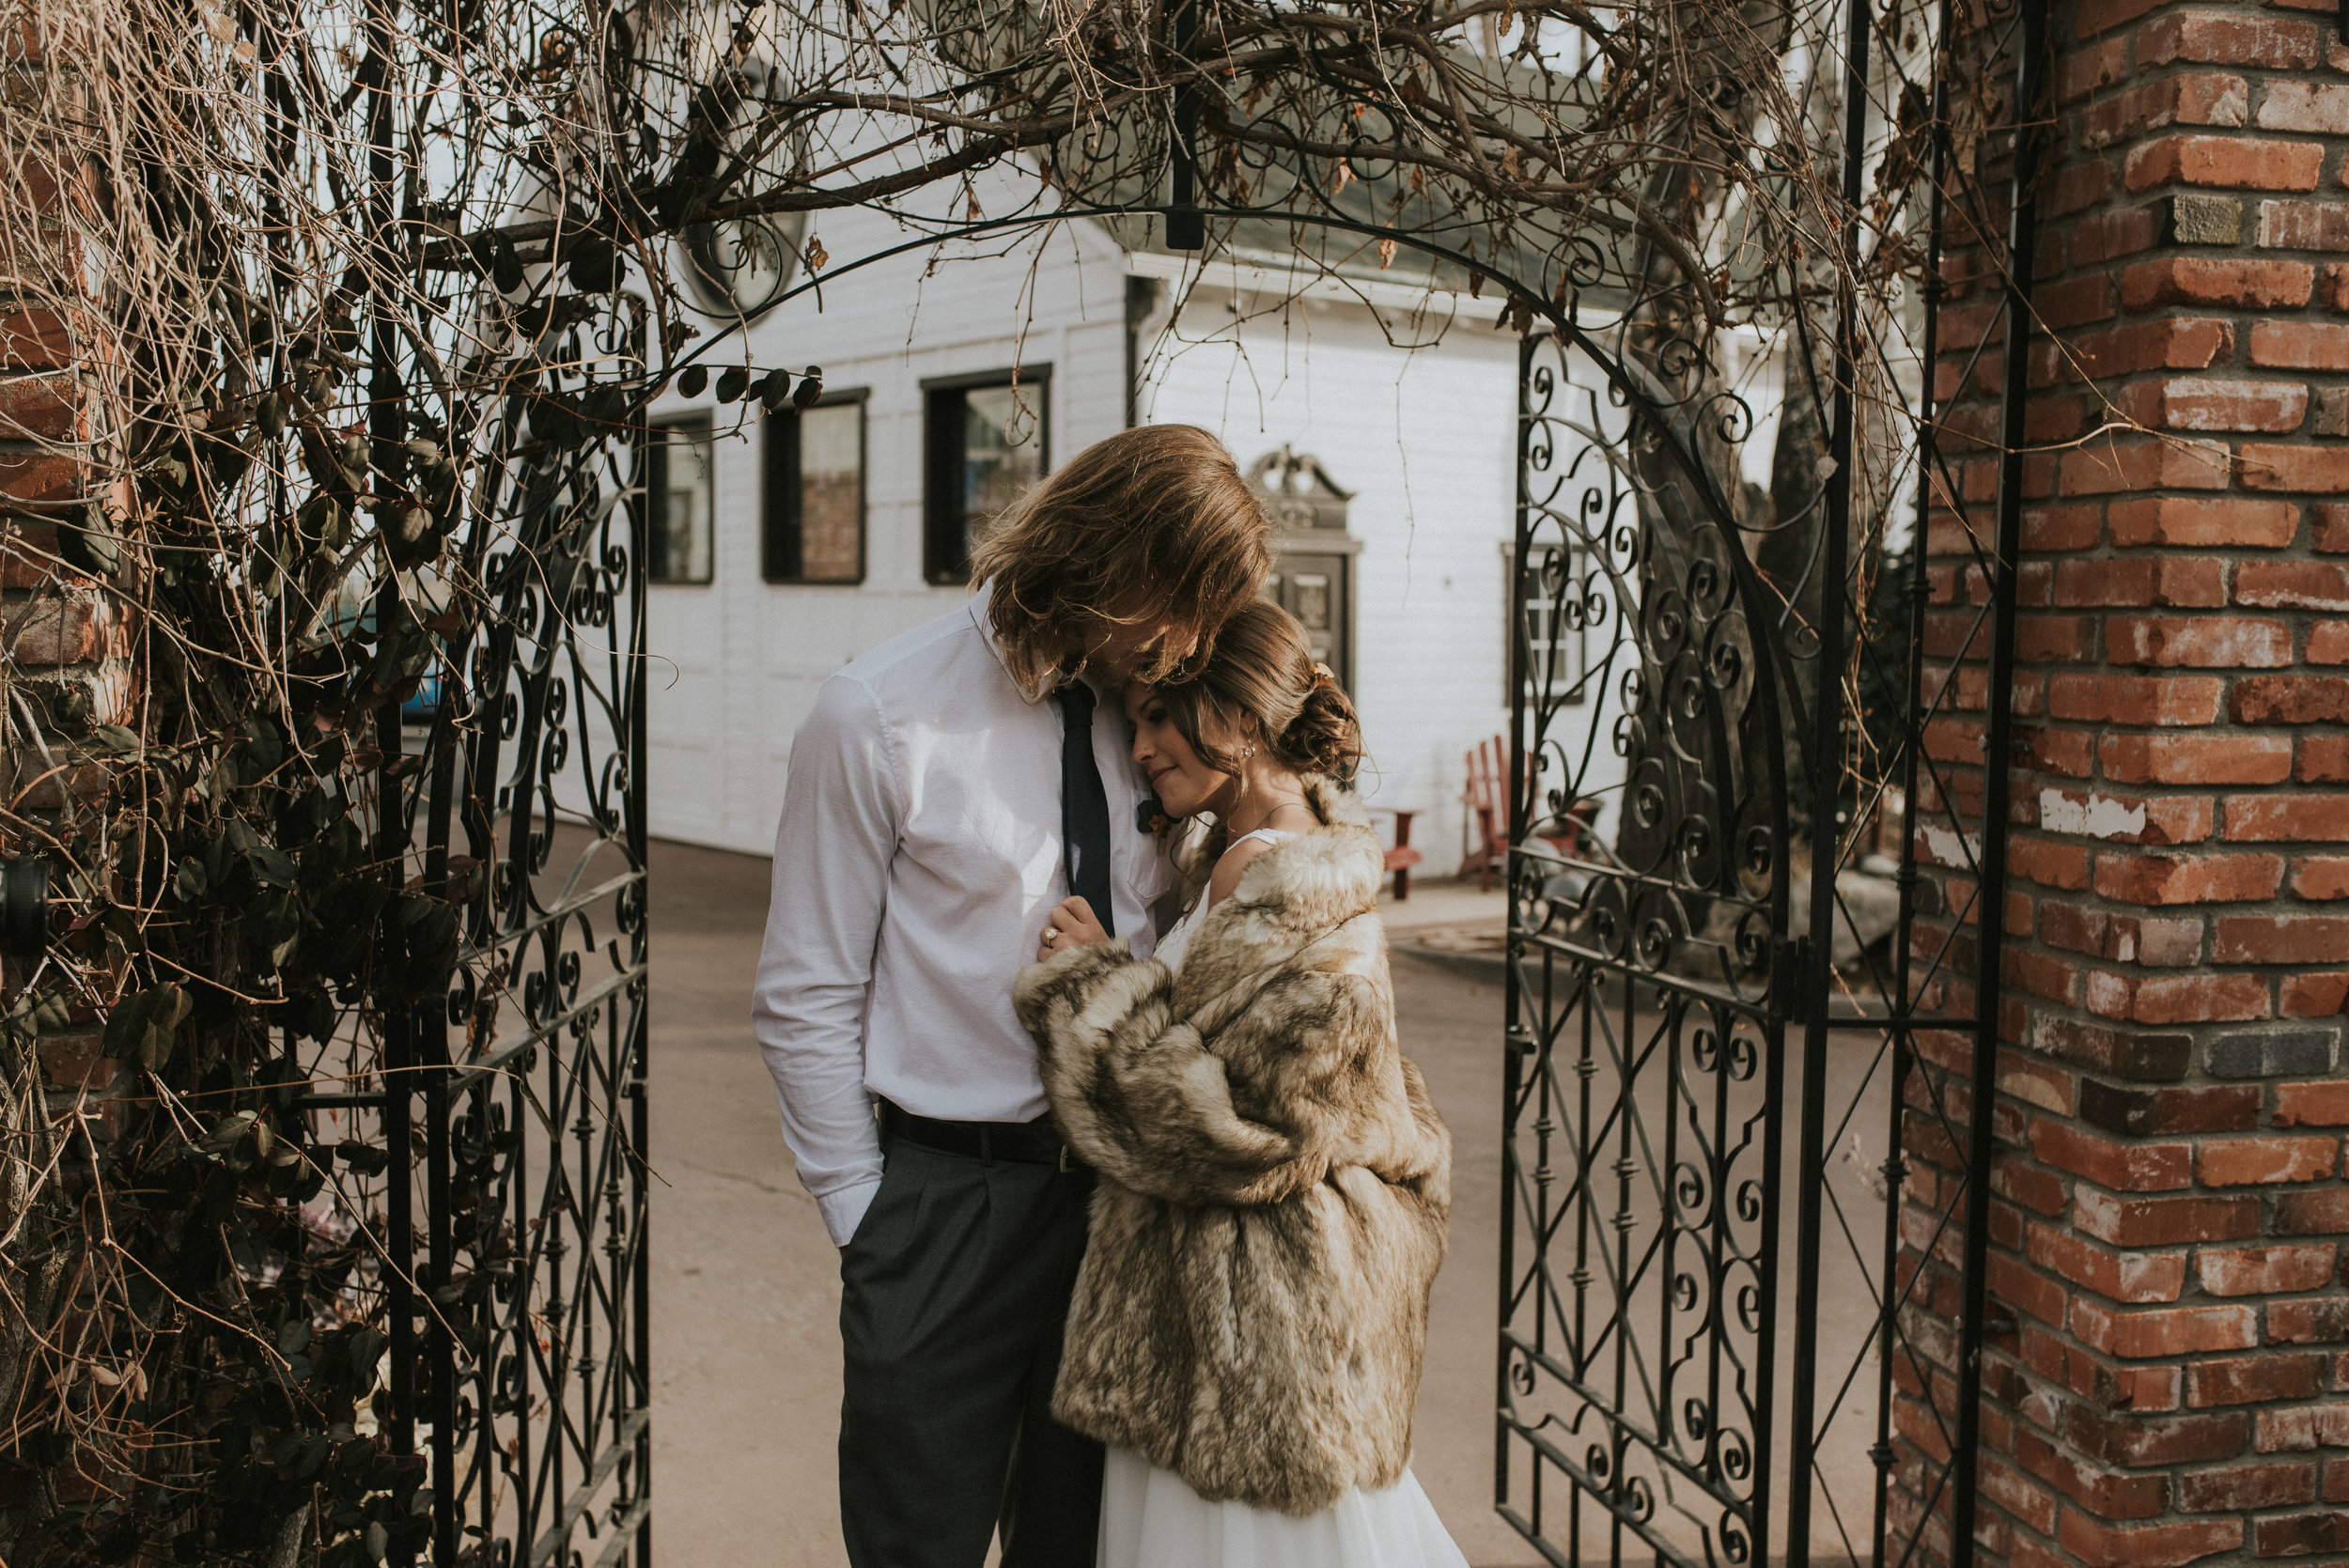 Colorado mountain elopement and wedding photographer for adventurous couples